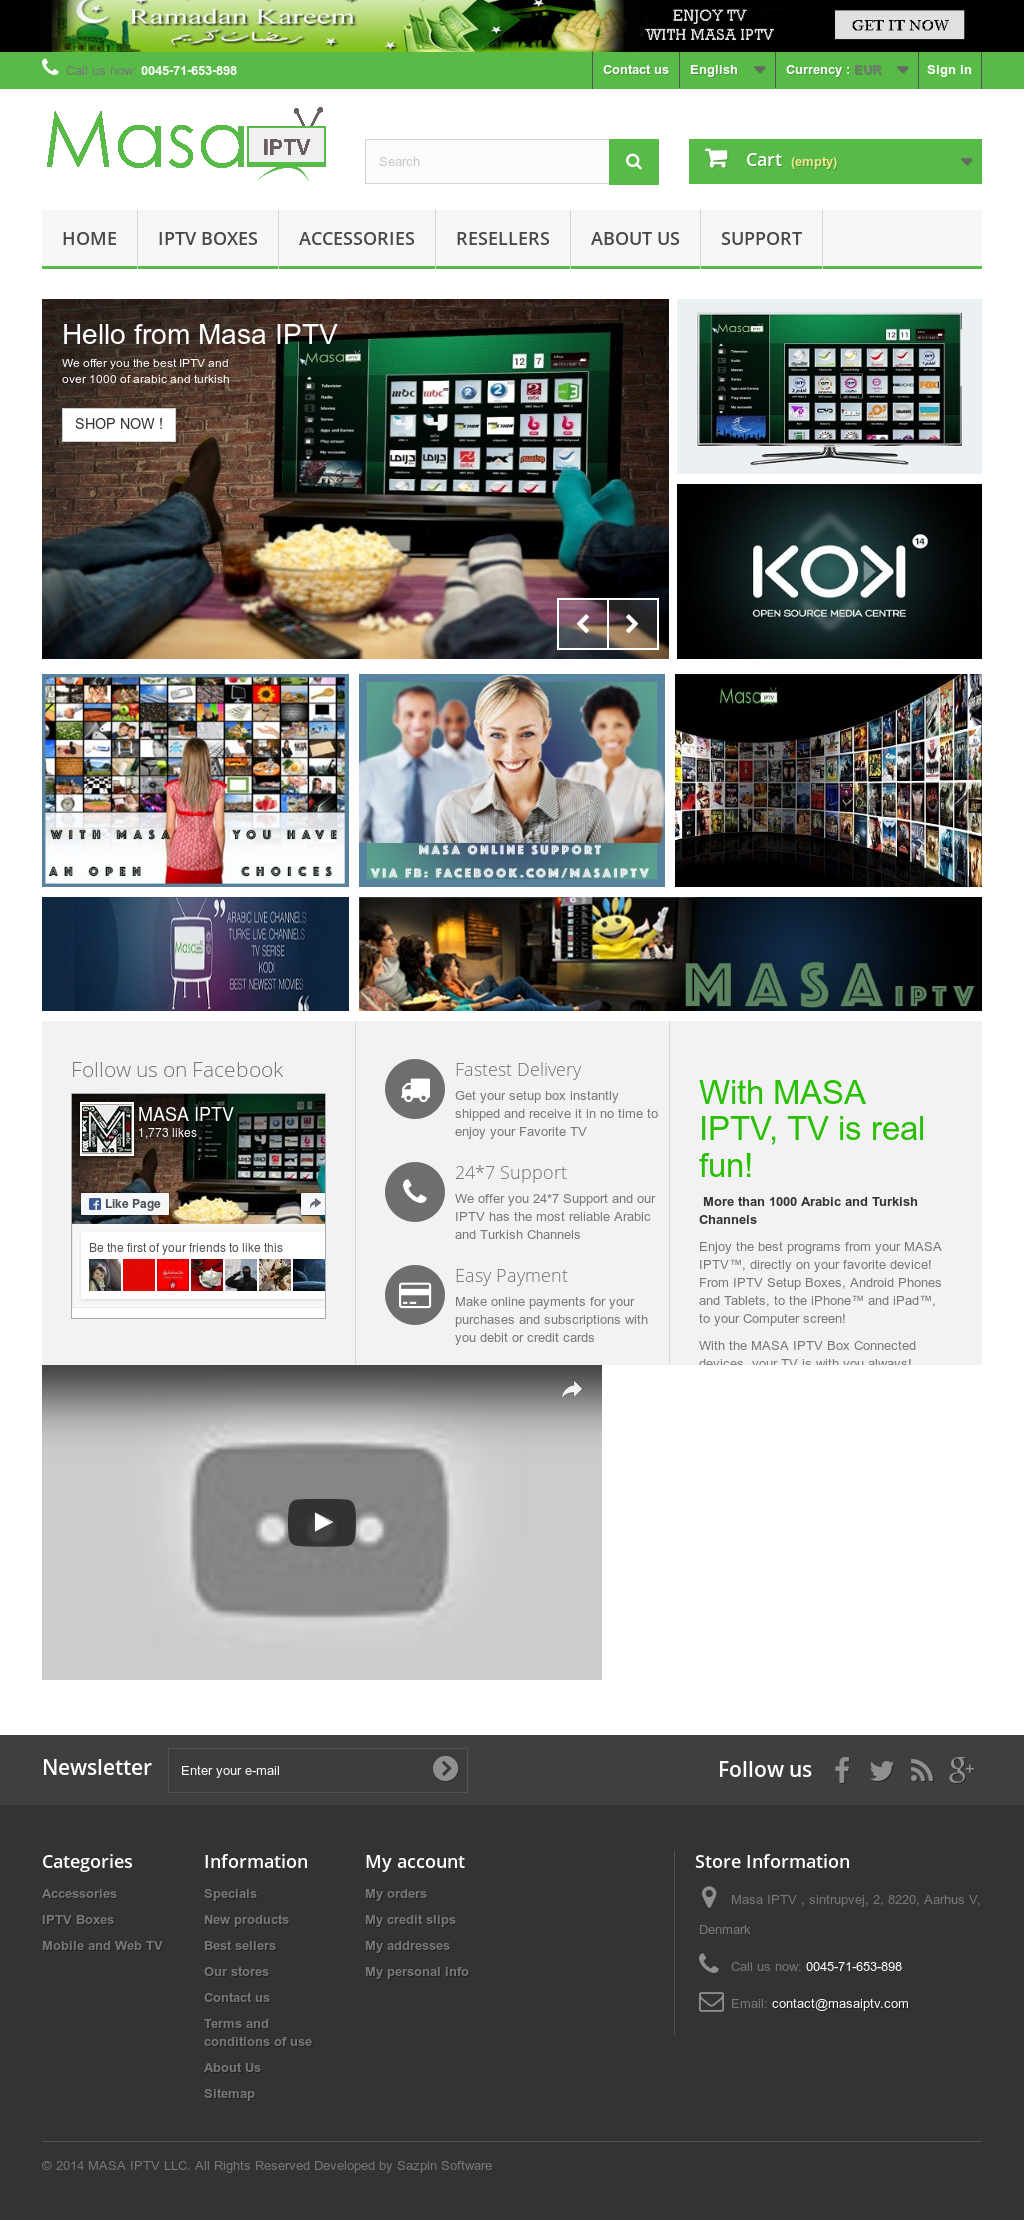 Masa Iptv Competitors, Revenue and Employees - Owler Company Profile